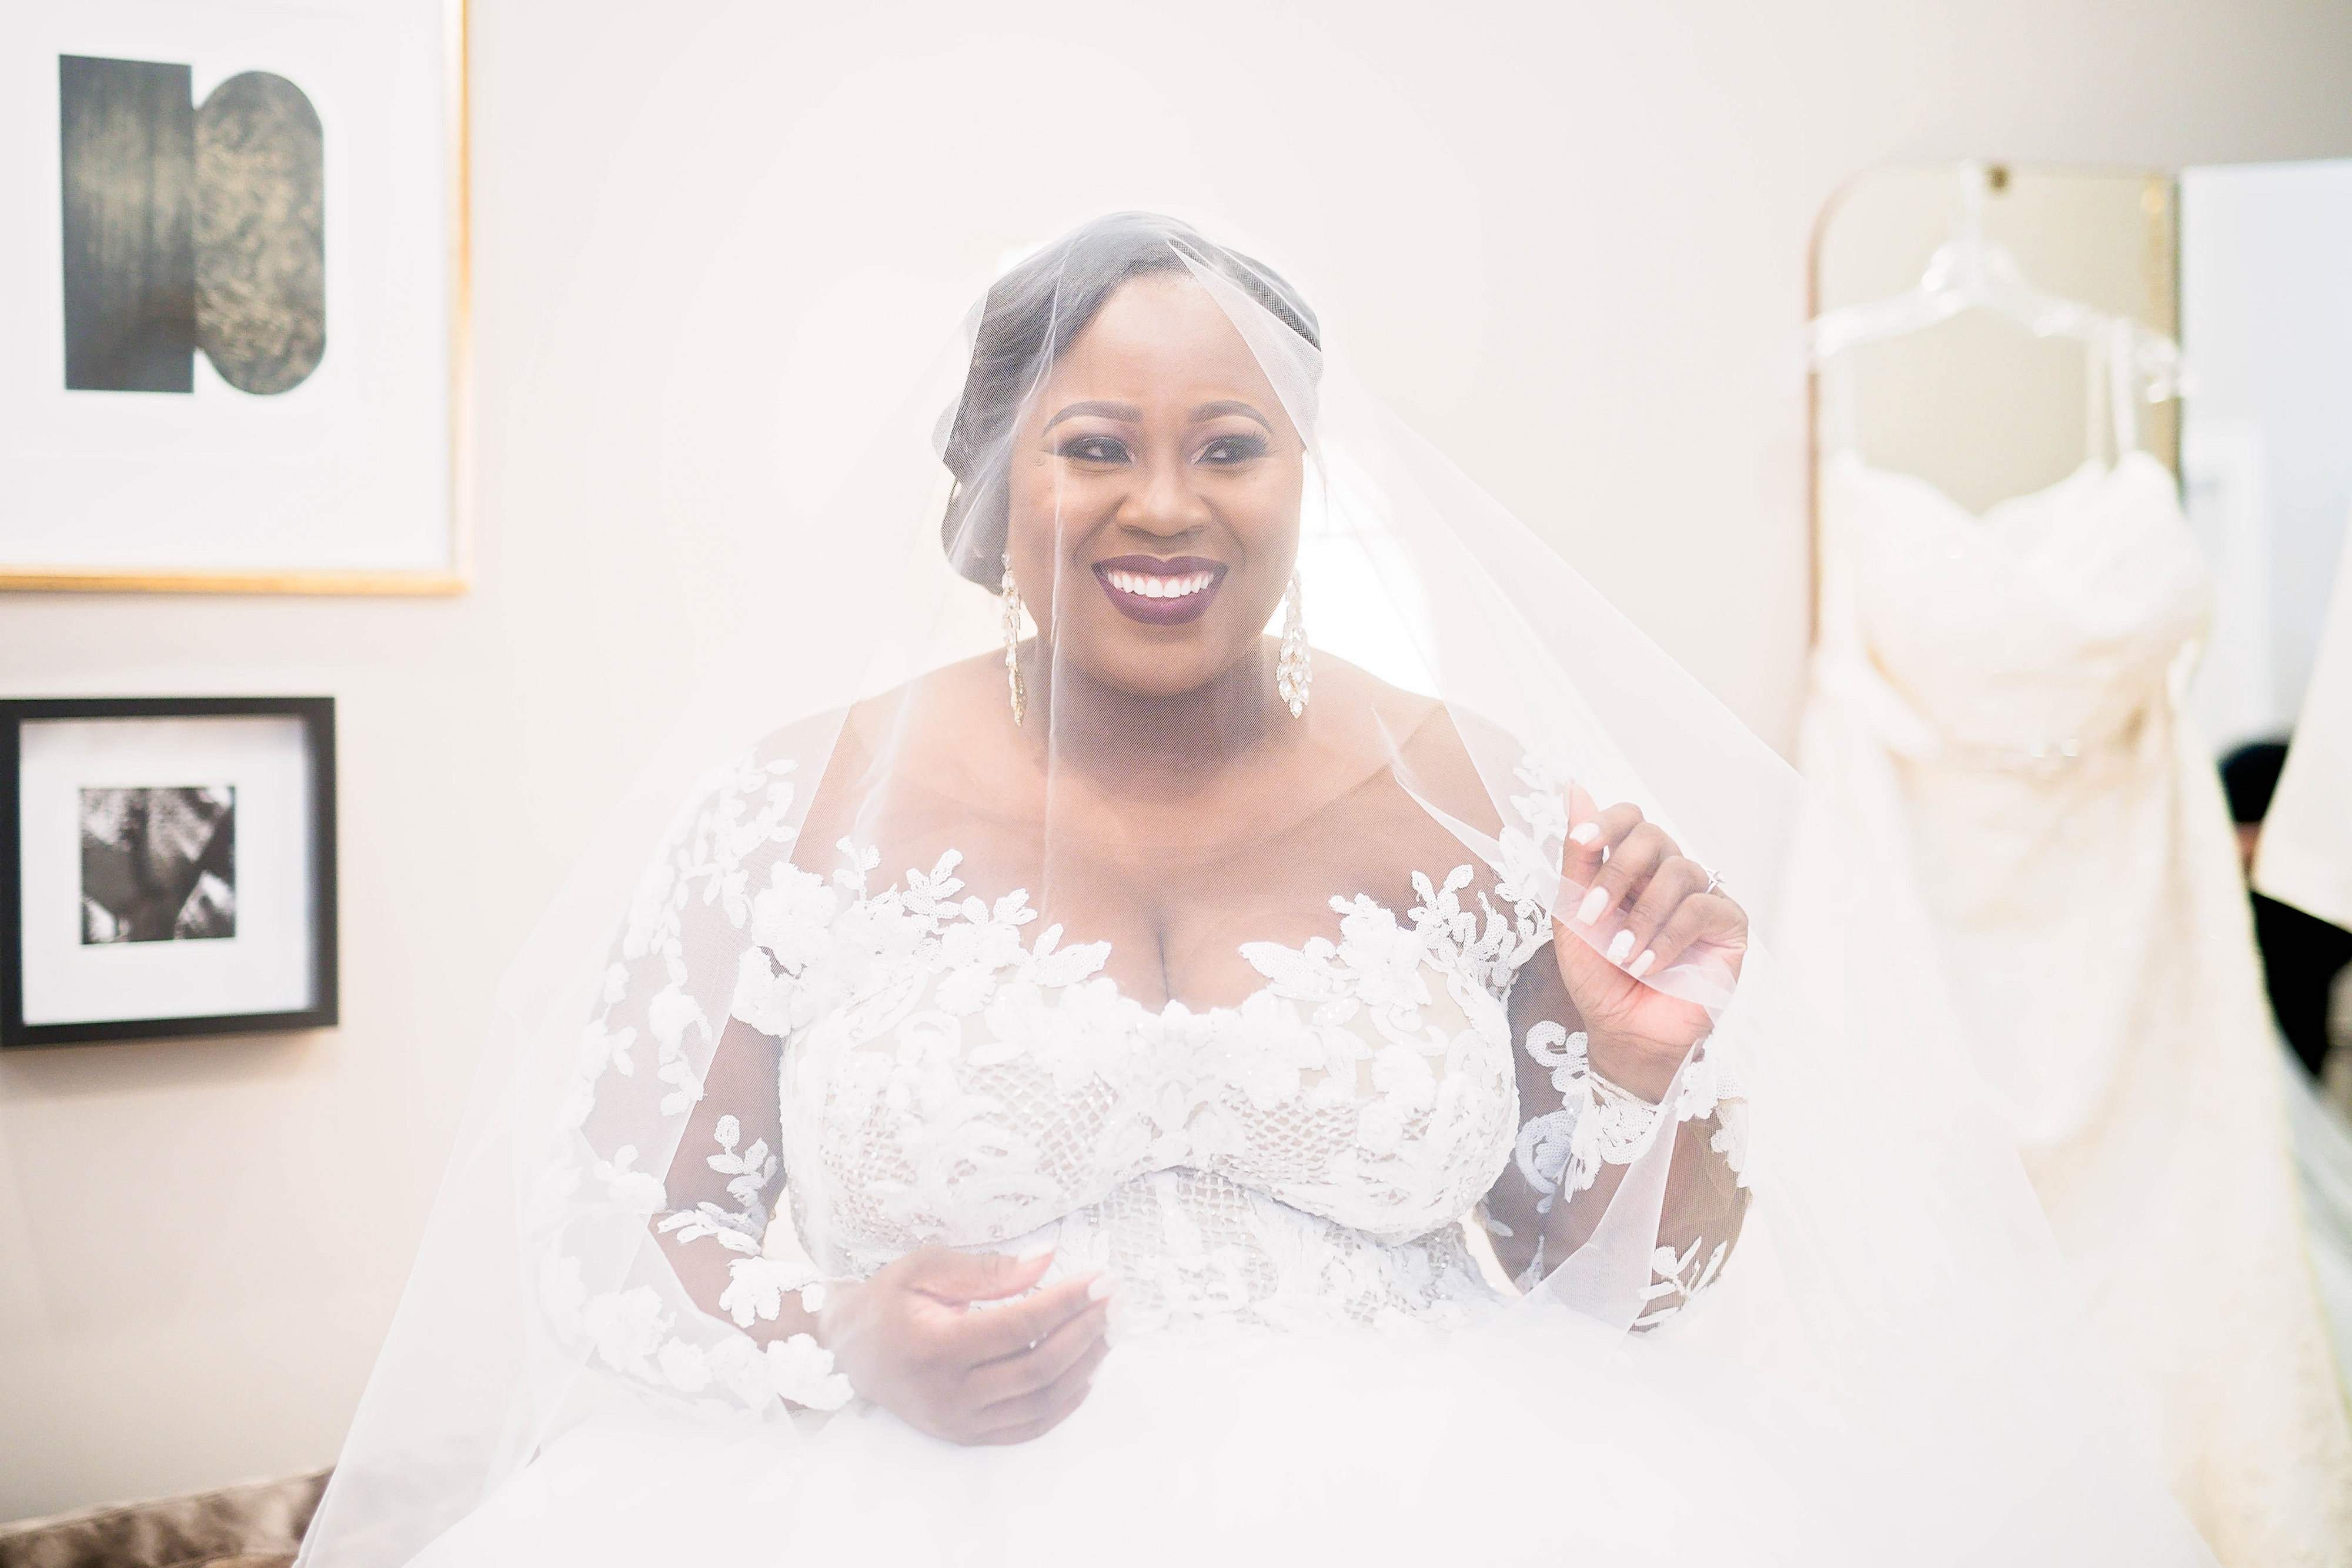 Olympic gold medalist shot putter Michelle Carter is married, and we